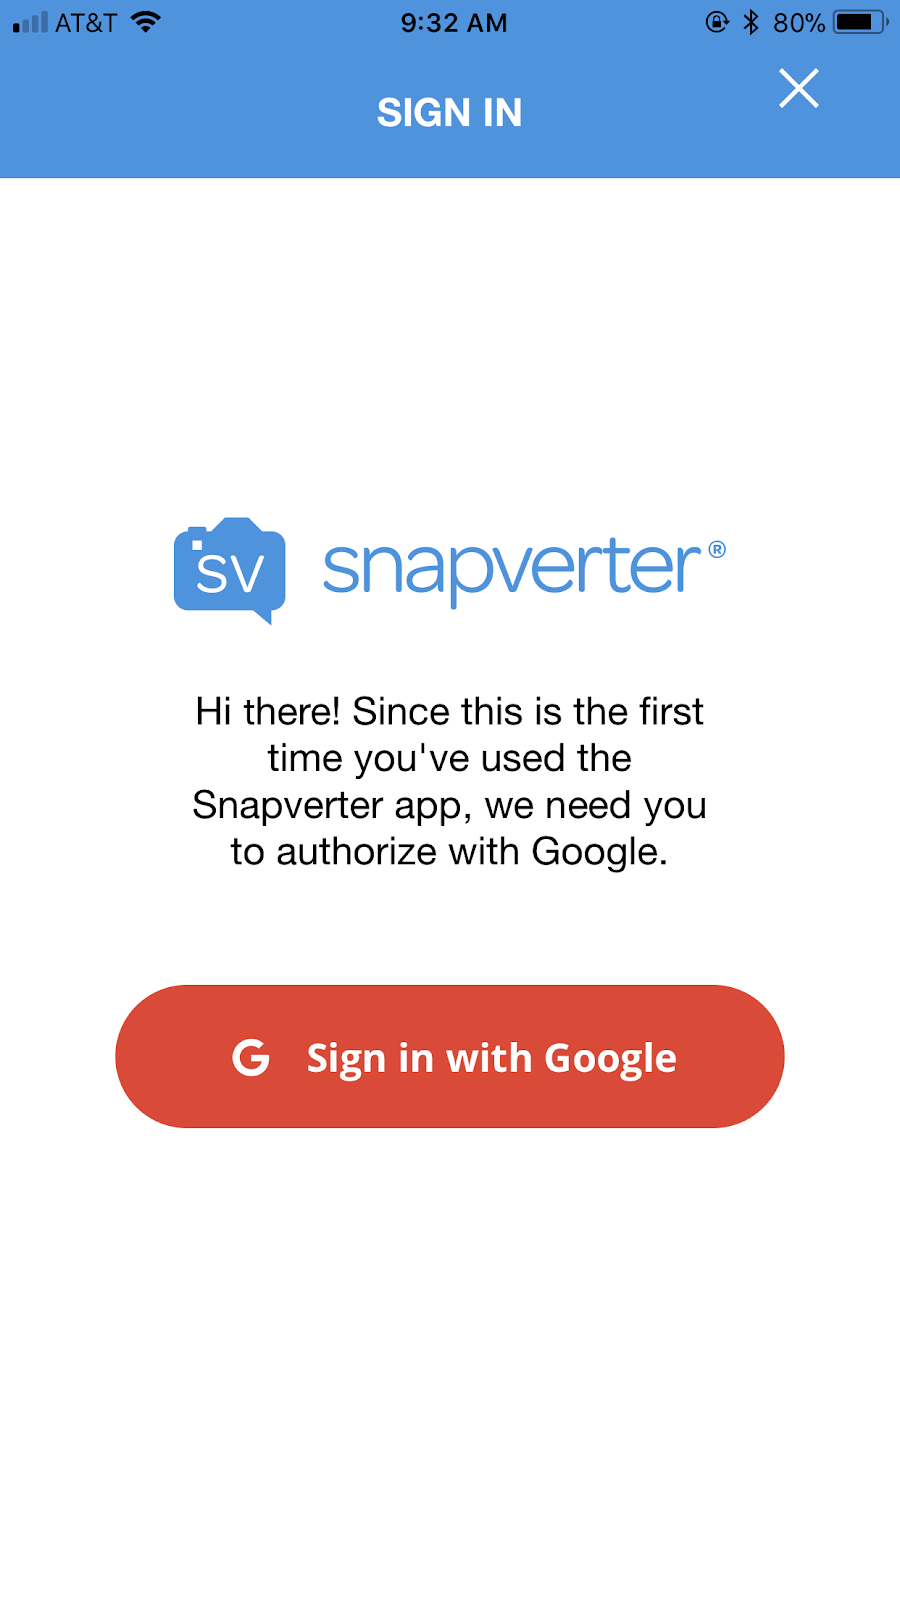 Sign in with Google icon